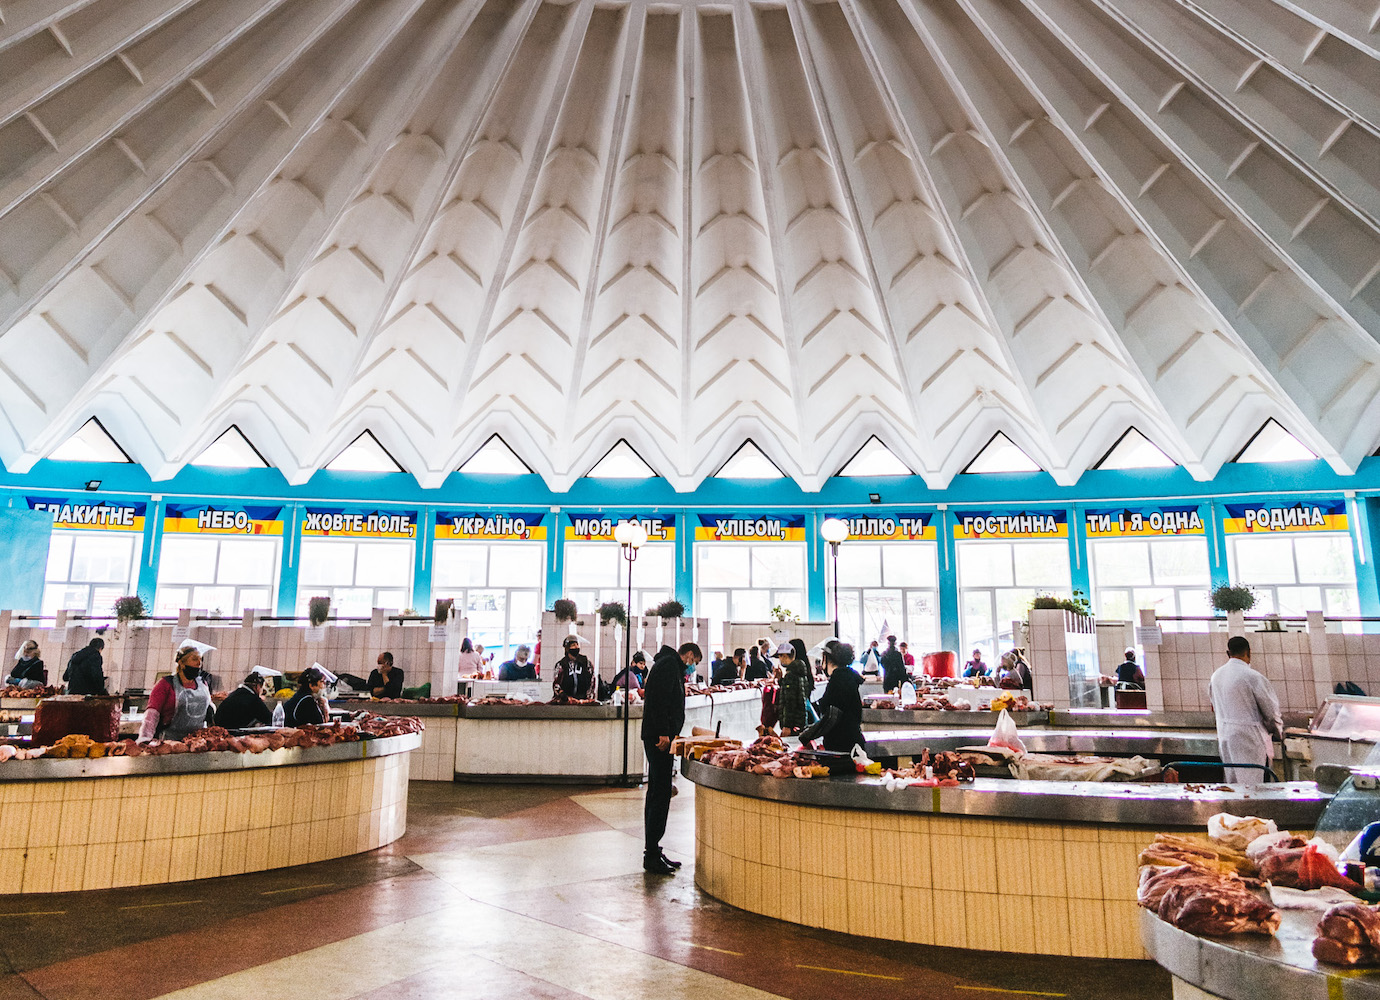 Join the Instagram account fighting to save Ukraine's modernist heritage